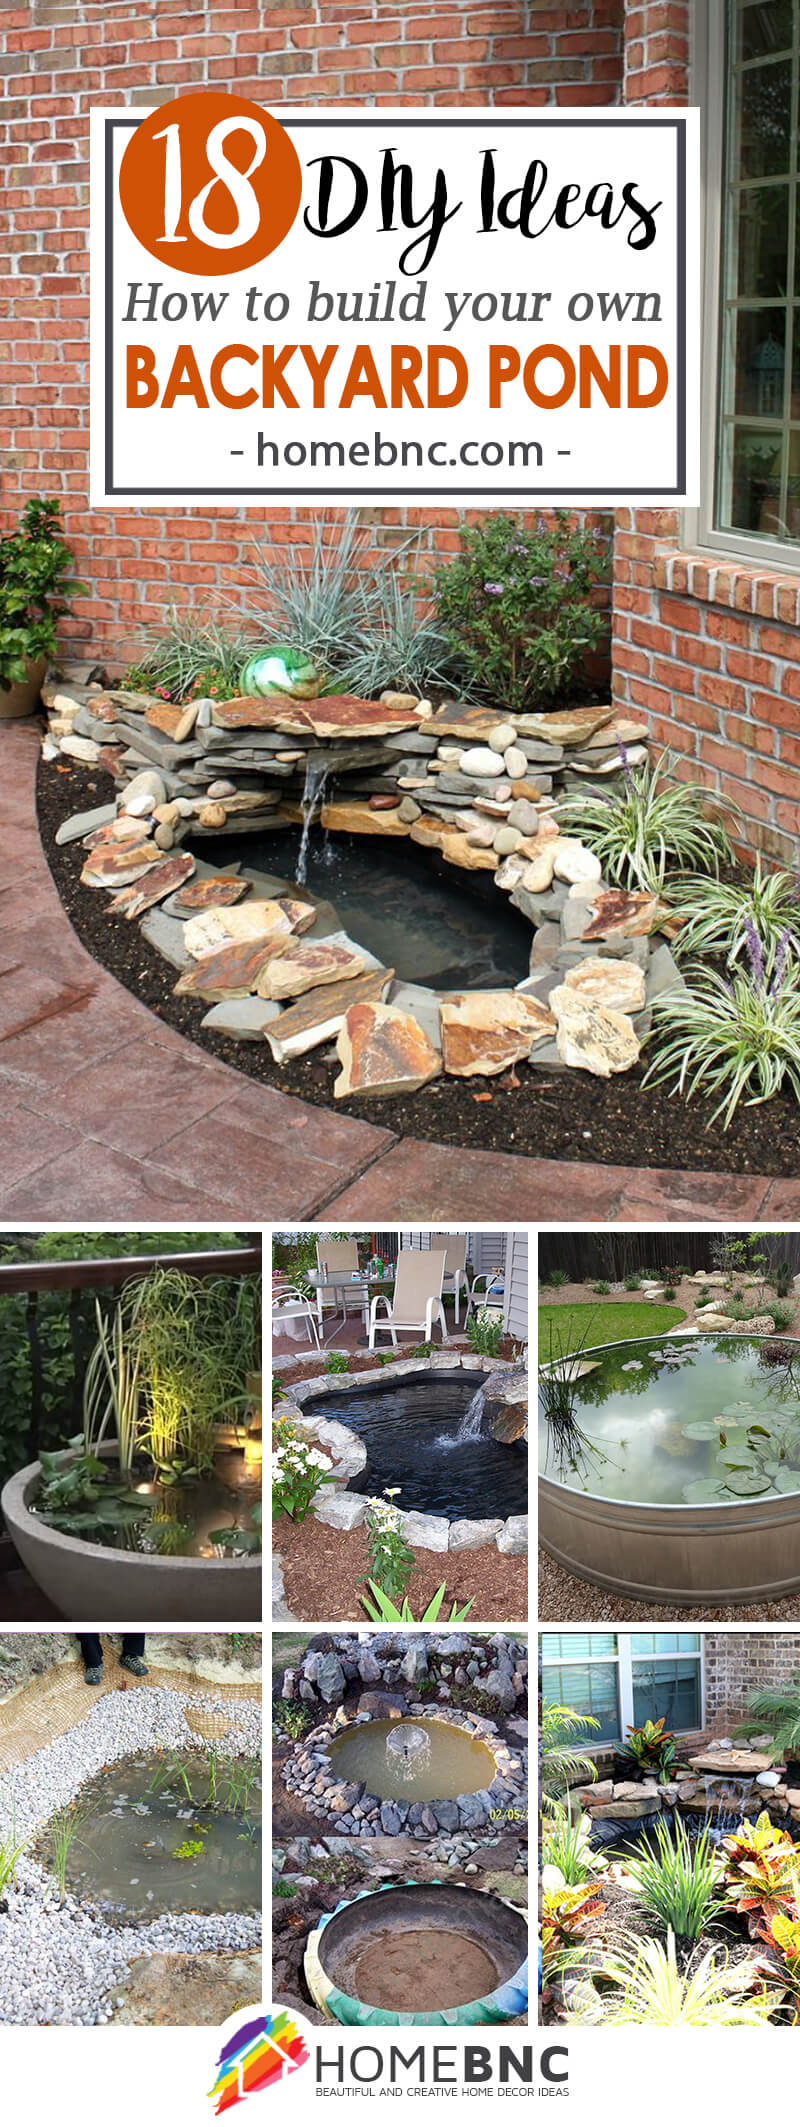 18 Best Diy Backyard Pond Ideas And Designs For 2019 pertaining to 13 Clever Initiatives of How to Make Easy Backyard Pond Ideas